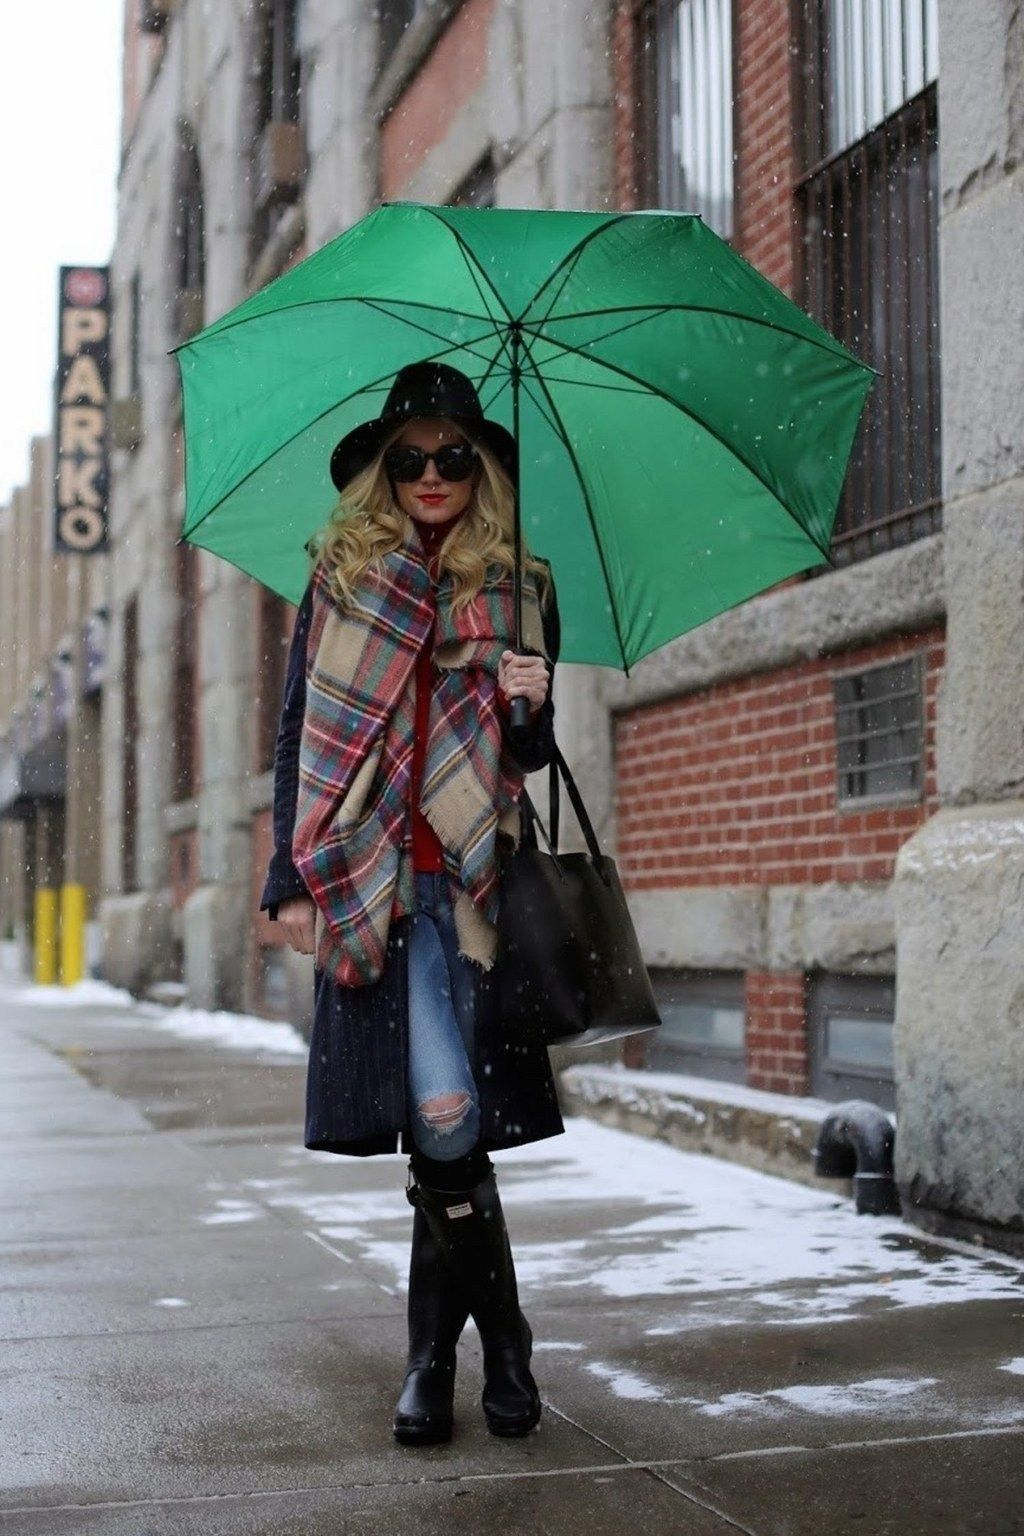 Fabulous Rainy Outfits Ideas You Must Have Right Now 01 #rainydayoutfit